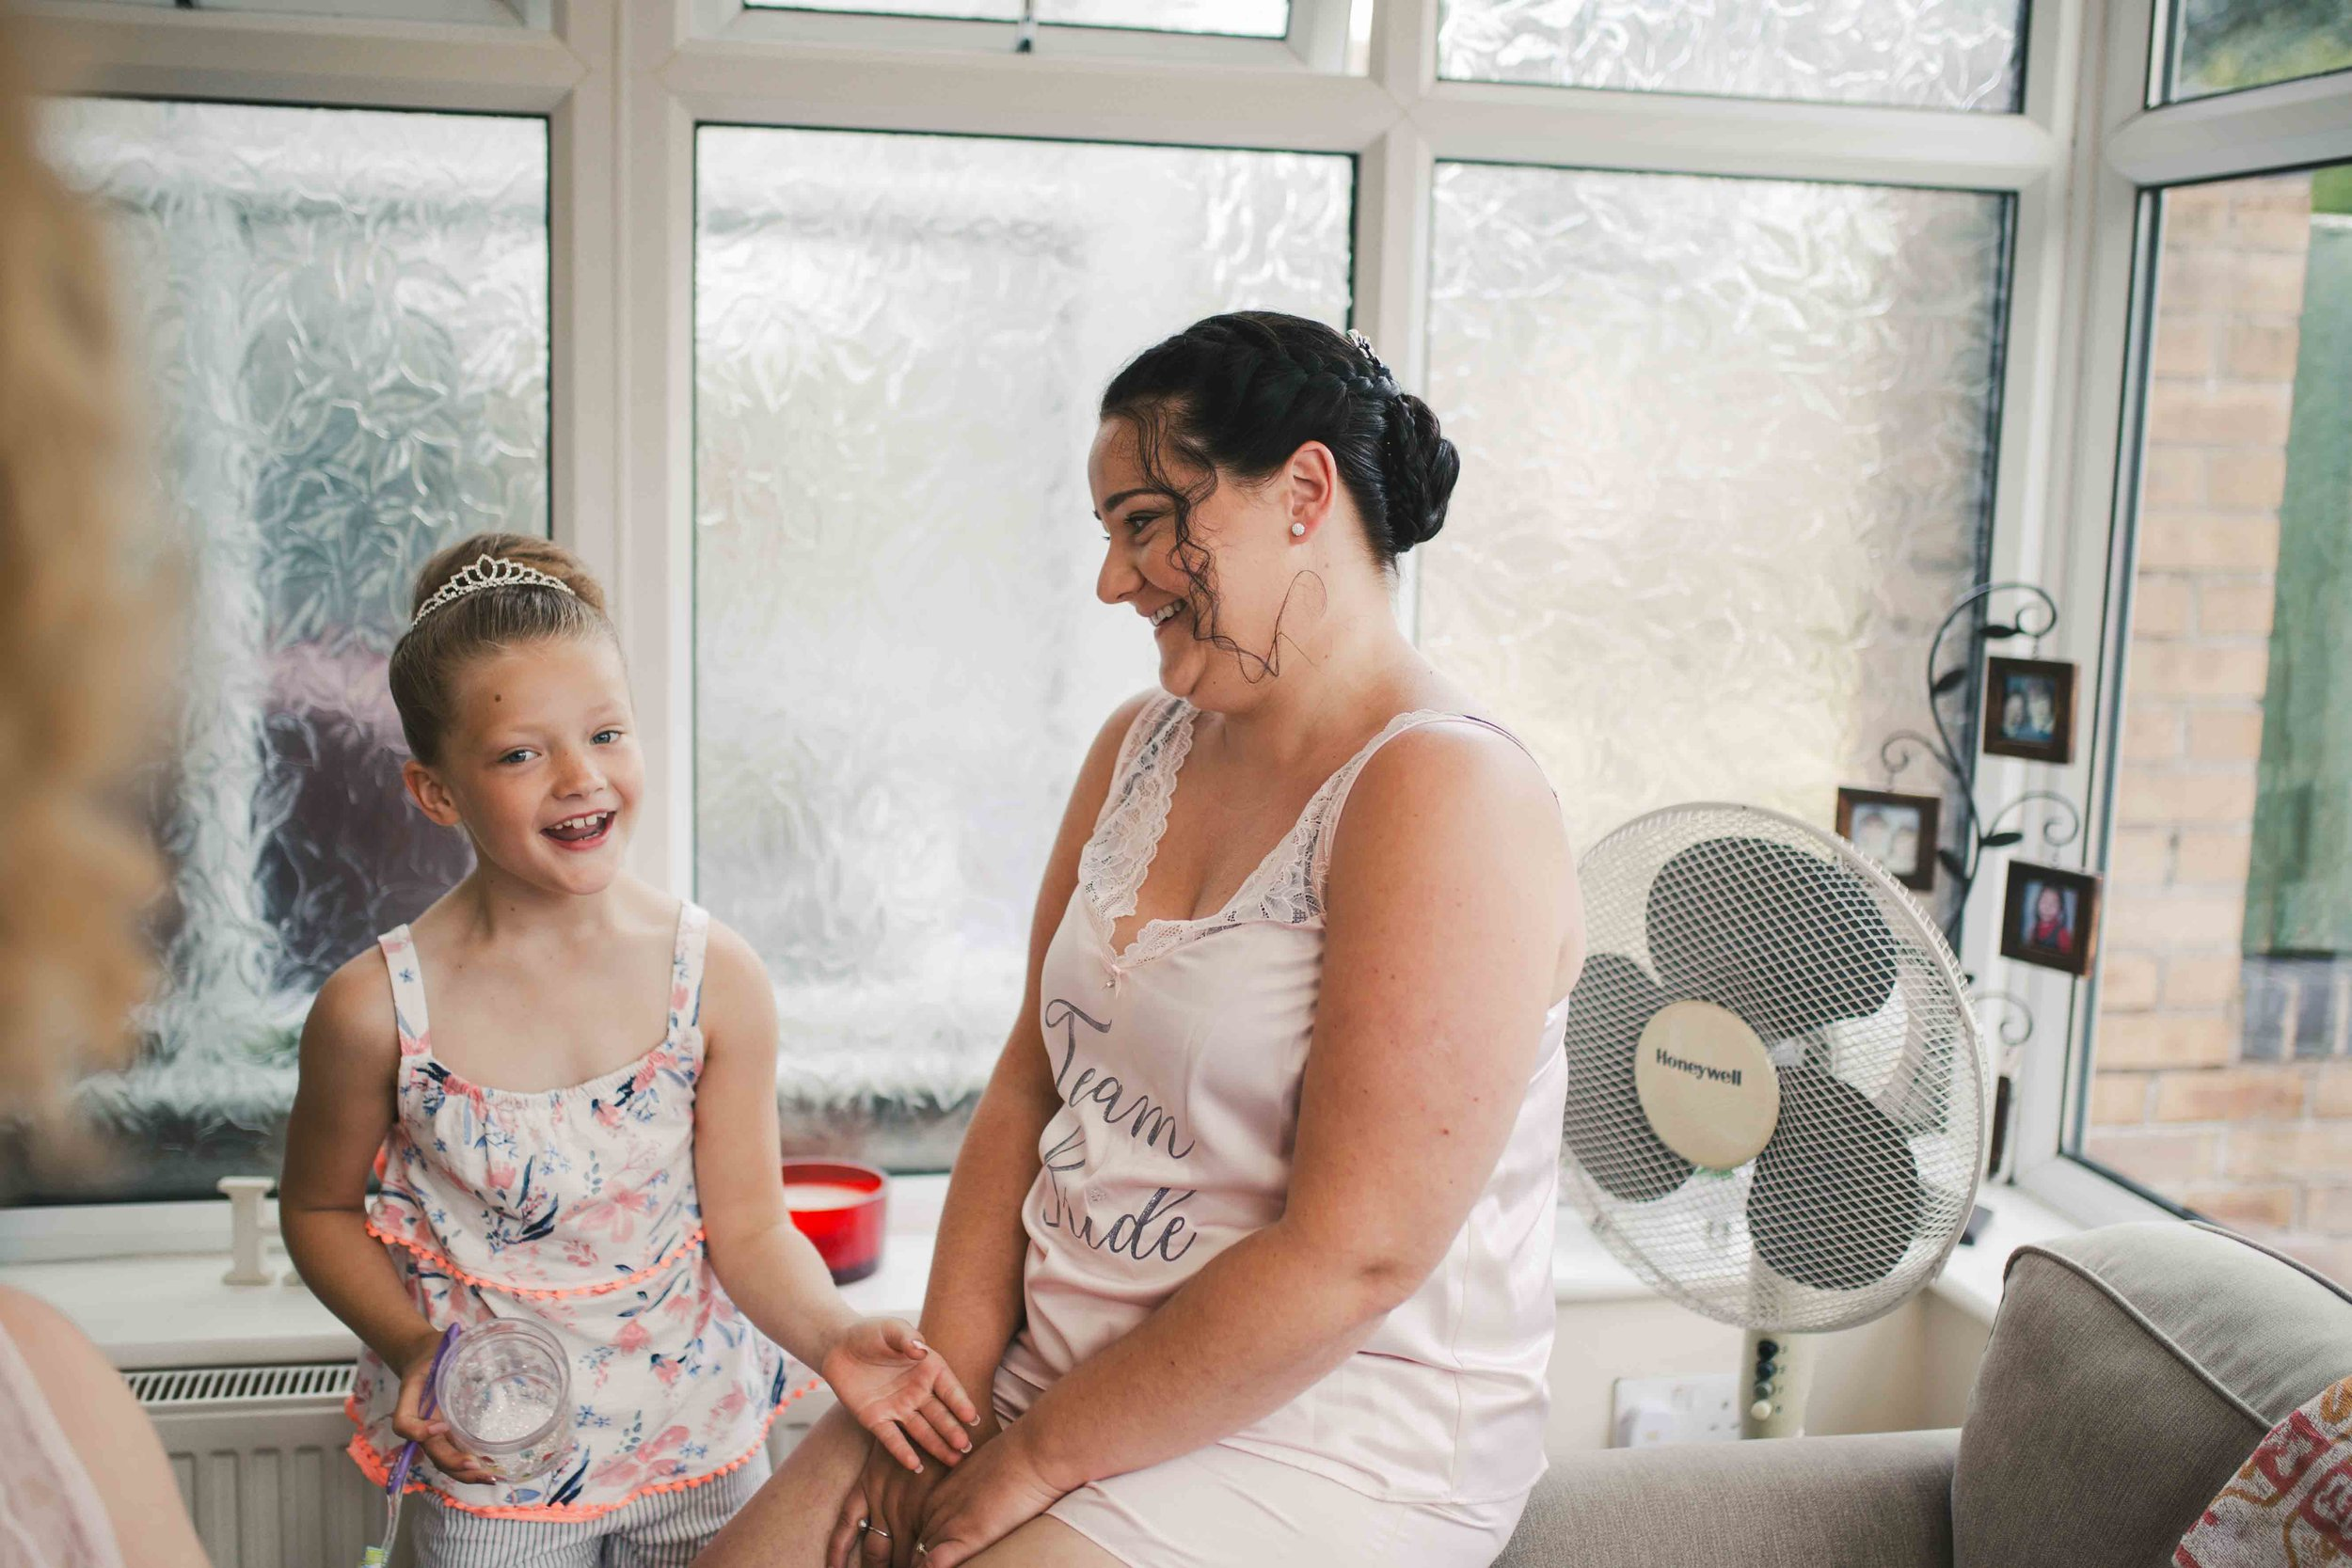 Lea-cooper-photography-wedding-photography-stoke-on-trent-wolverhampton-bridal-prep-bridal-photography-wedding-preperation-make-up-getting-ready-photos-wedding-photographer-22.JPG